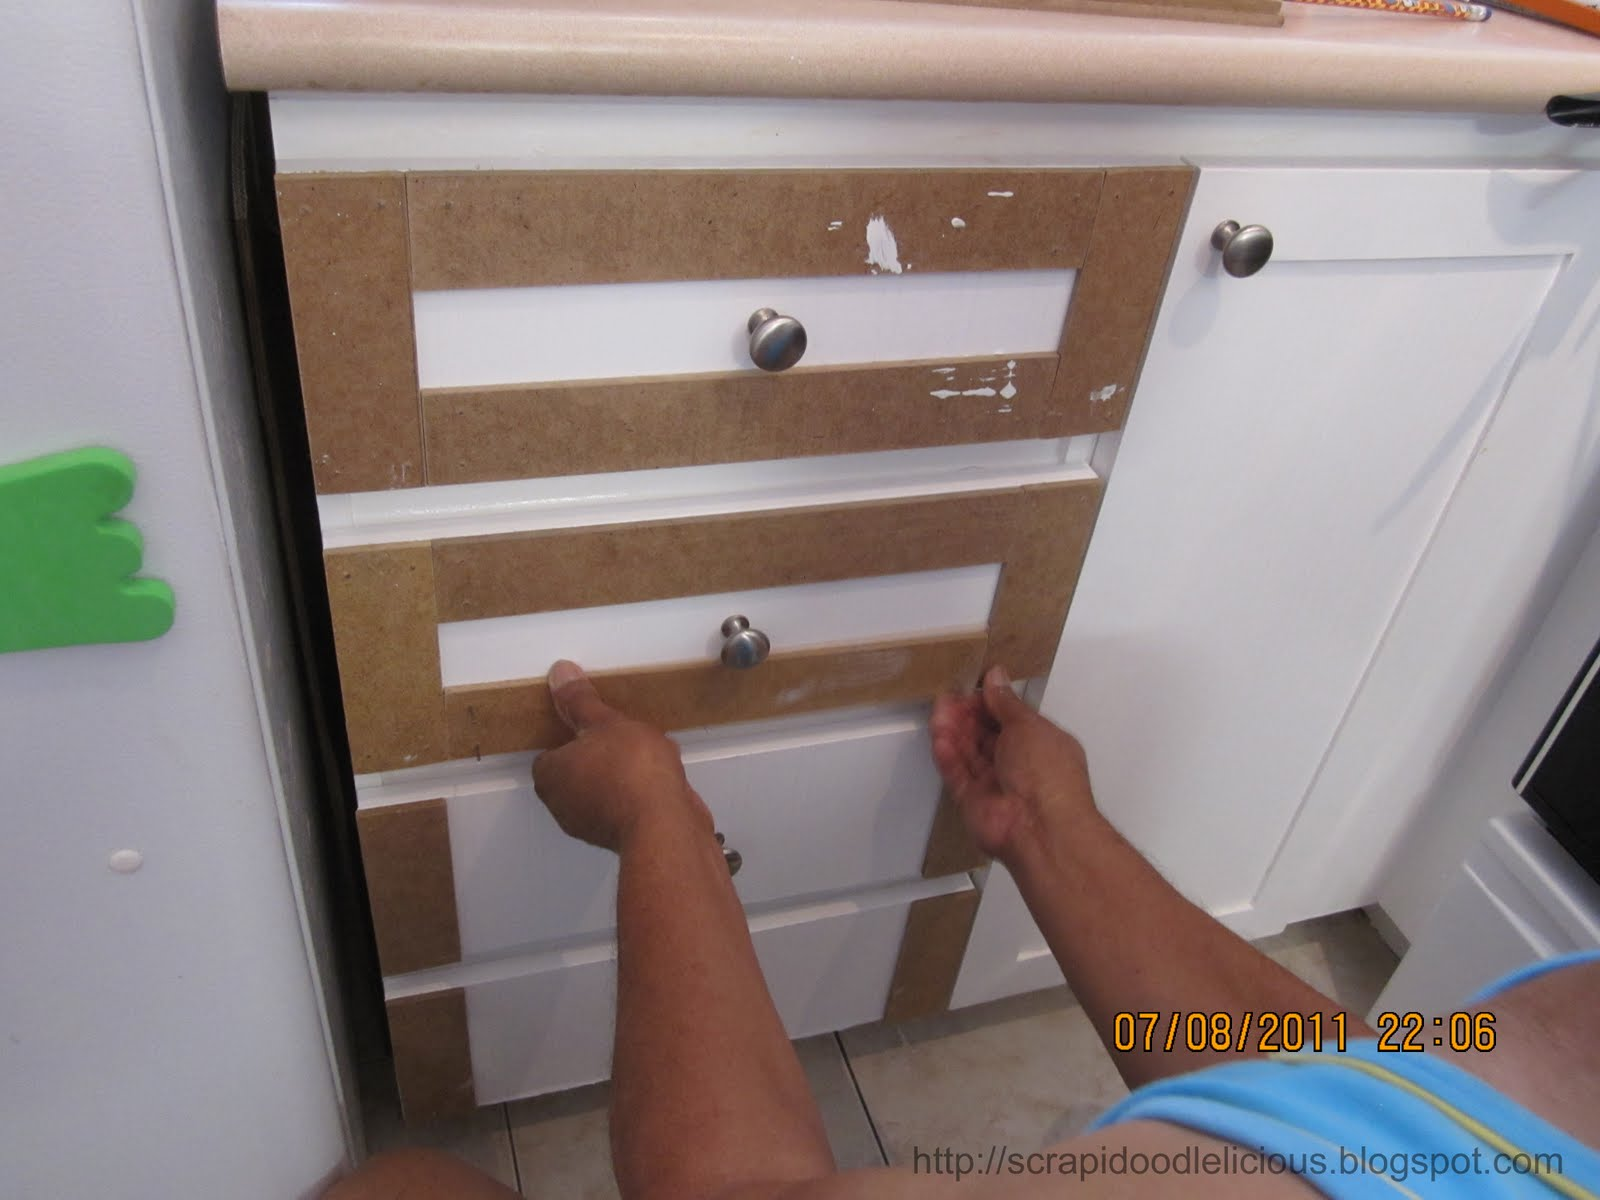 cabinet doors will open widely Apply a Dry Dex Spackling by DAP then 1600x1200